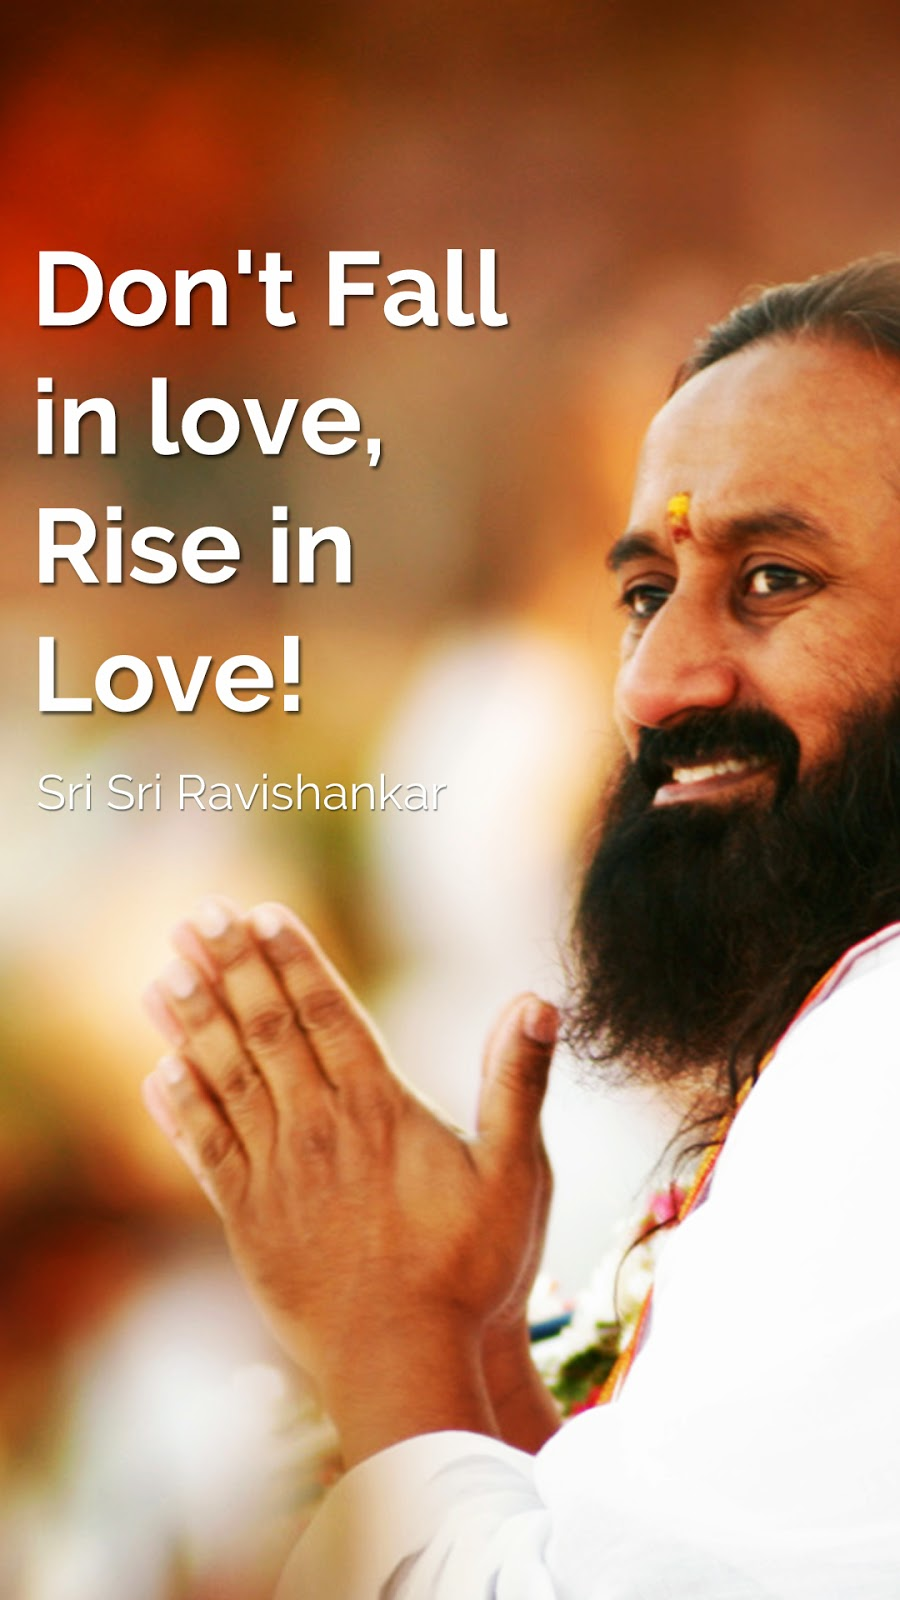 Sad Wallpaper For Mobile With Quotes Download Sri Sri Ravi Shankar Pictures Wallpapers Gallery